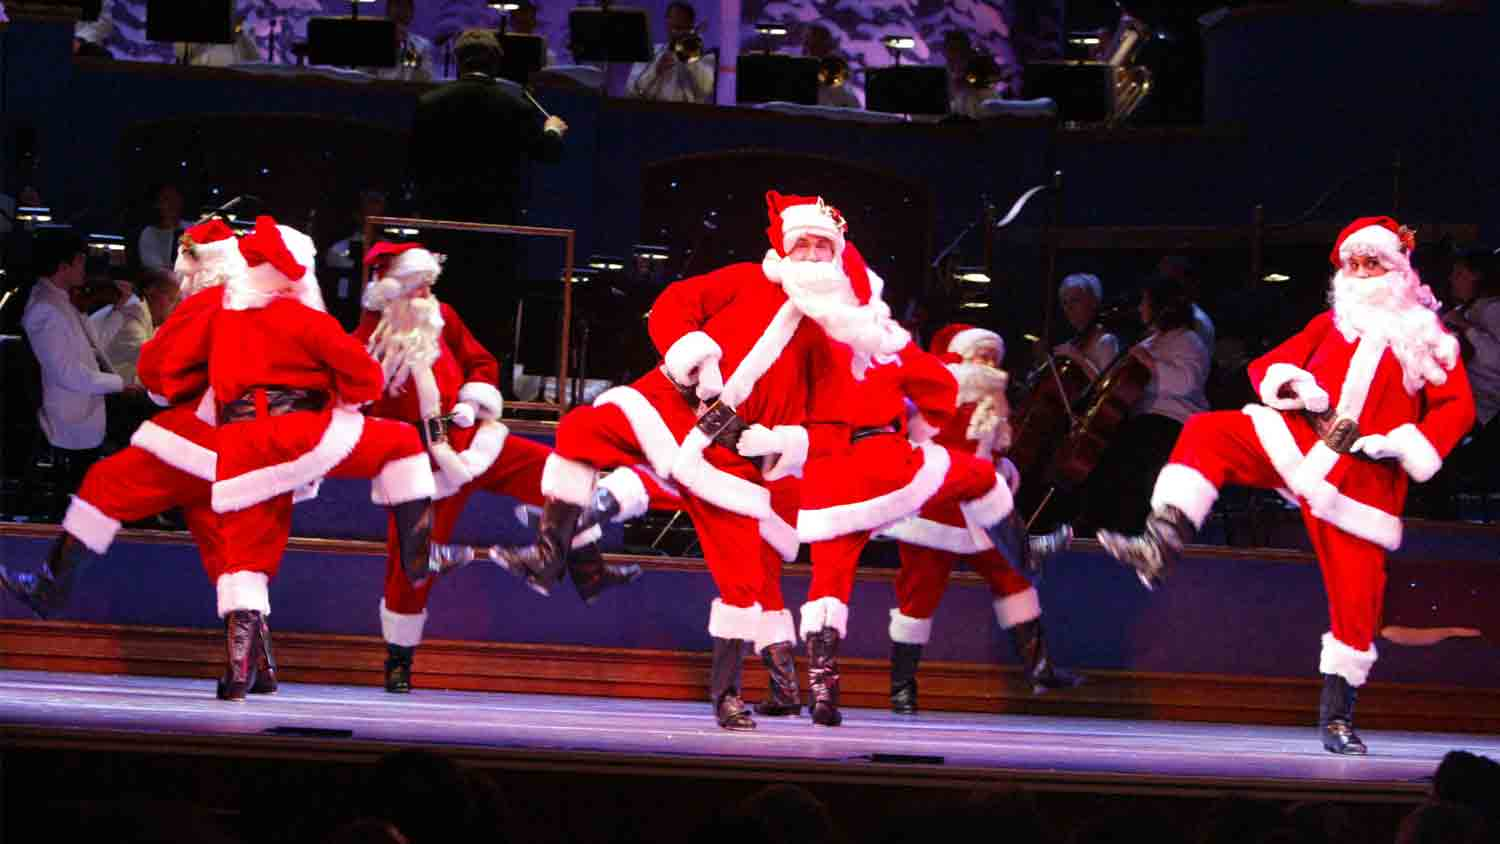 IPL Yuletide Celebration with Indianapolis Symphony Orchestra